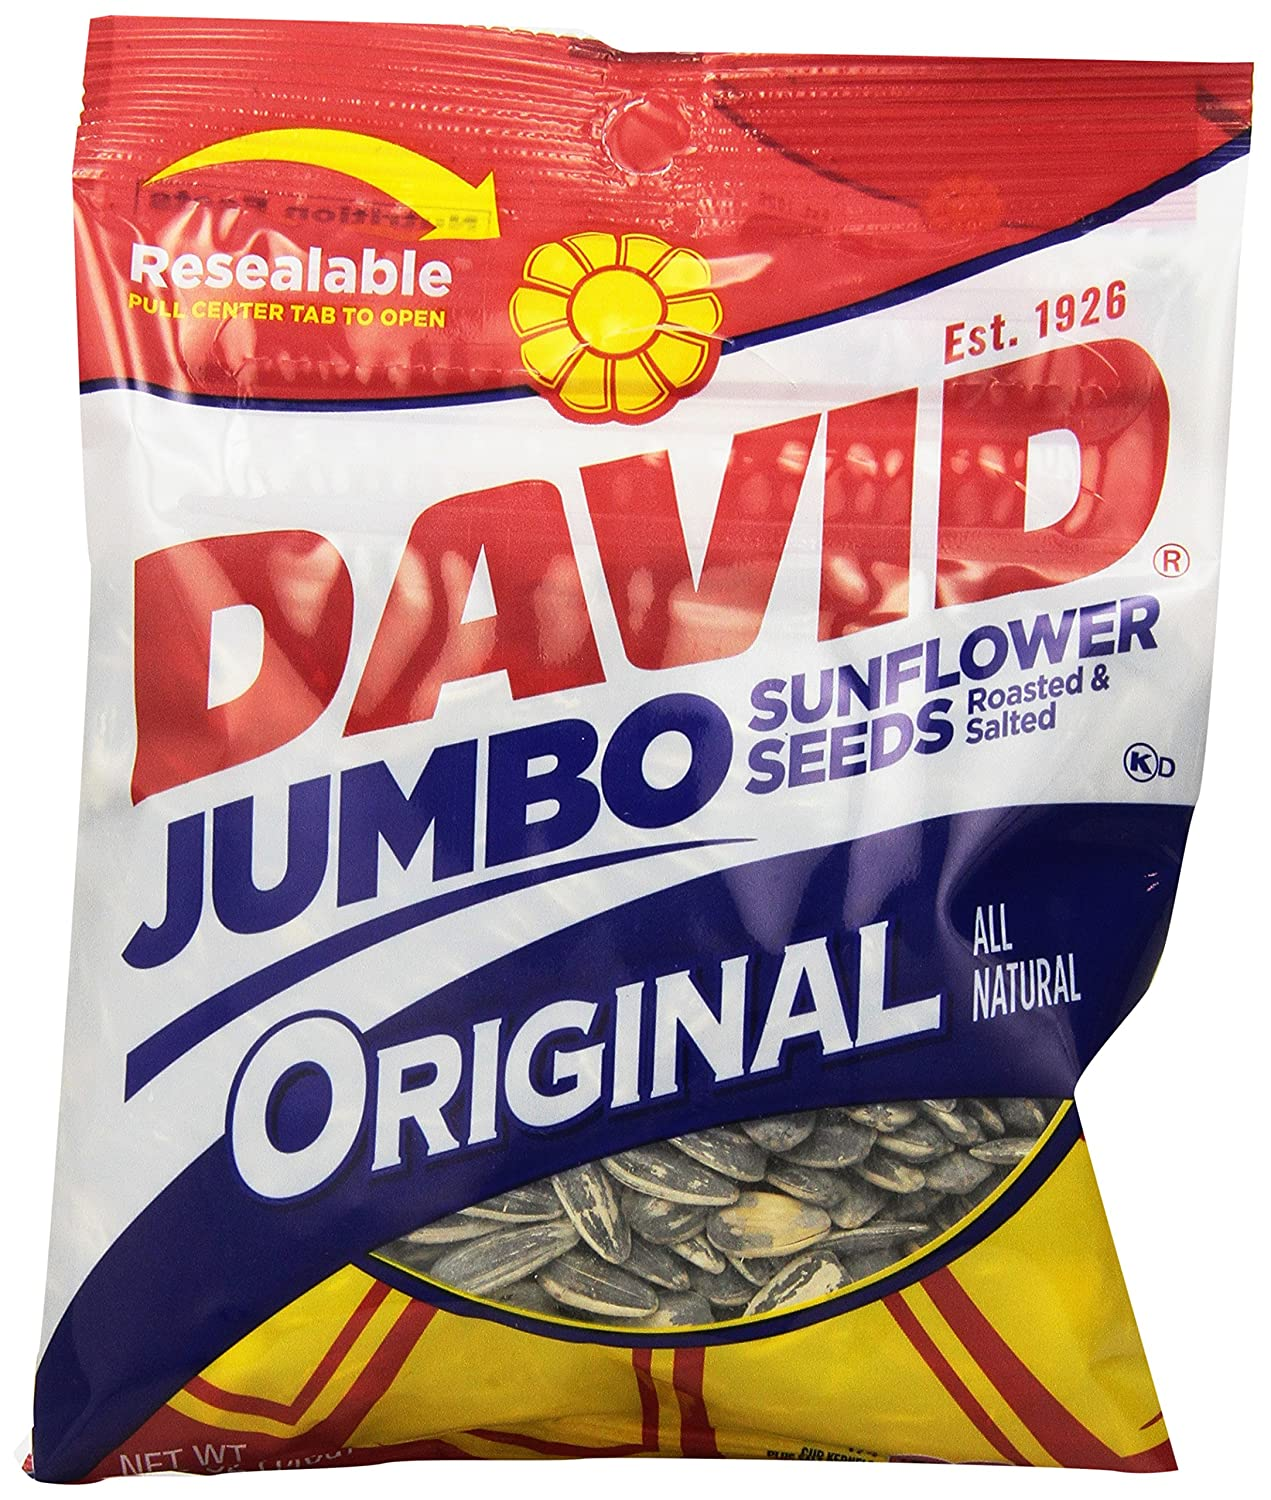 david sunflower seeds clipart - photo #4